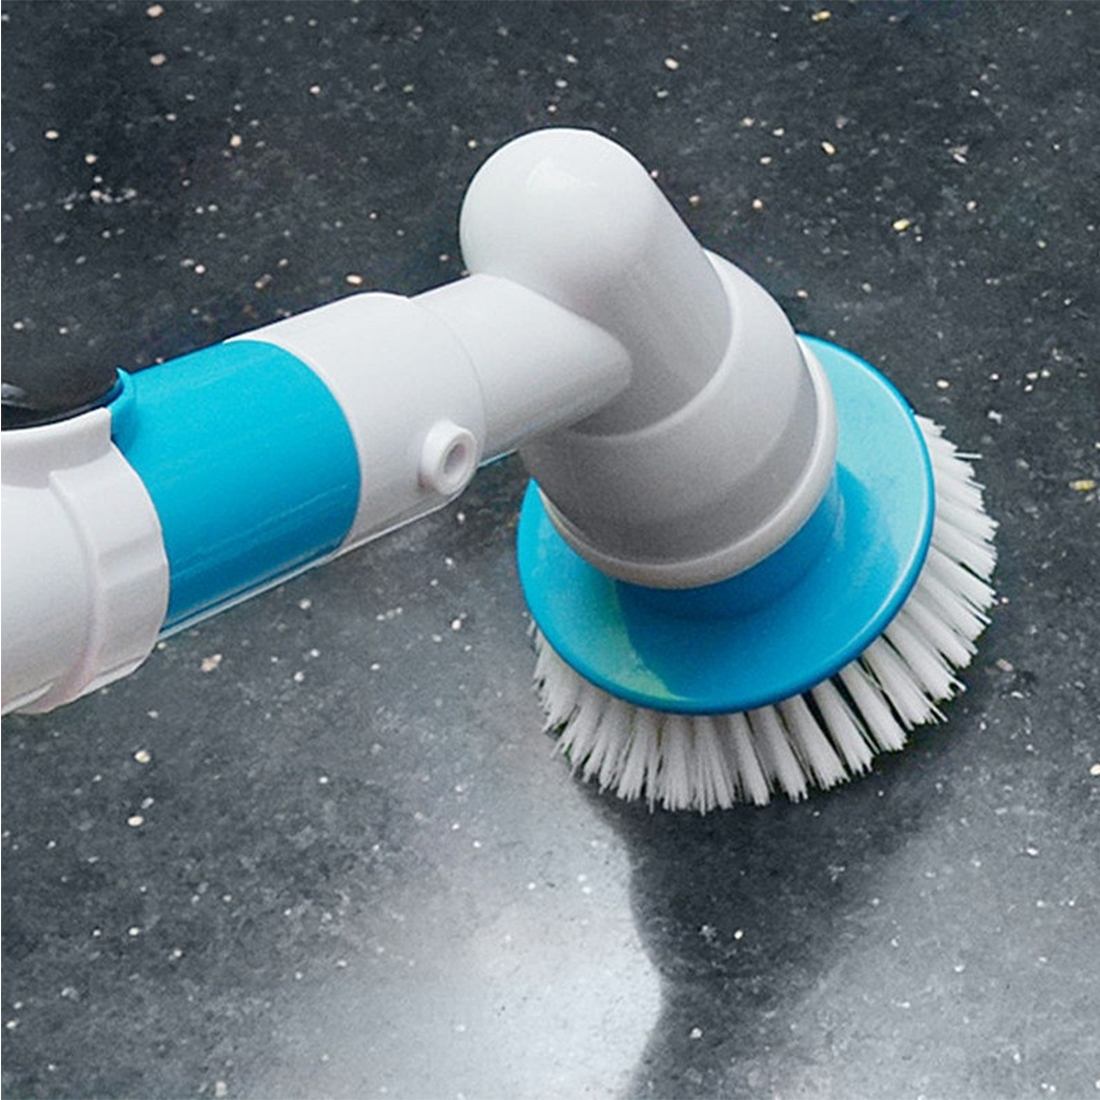 Multi-function Tub and Tile Scrubber Cordless Power Spin Scrubber Power Cleaning Brush Set for Bathroom Floor Wall, UK Plug